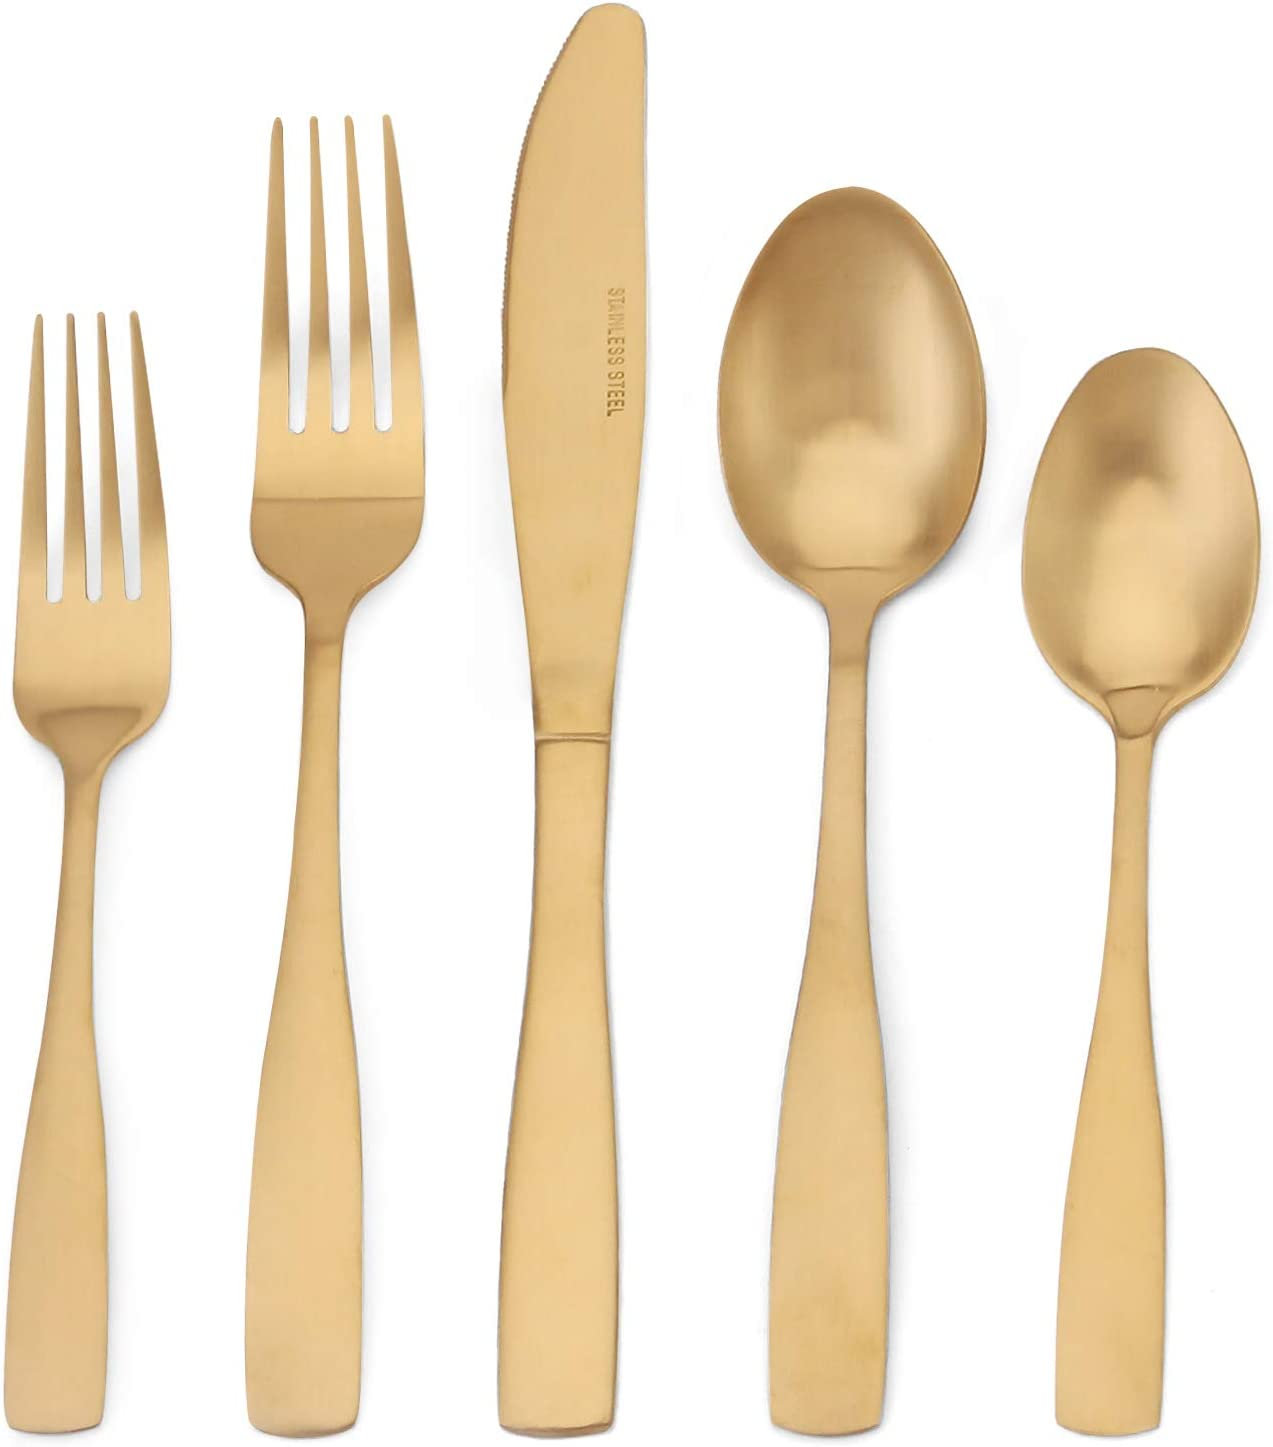 Matte Gold Silverware Set, 20-Piece Stainless Steel Flatware Set, Tableware Cutlery Set Service for 4, Utensils for Kitchens, Dishwasher Safe